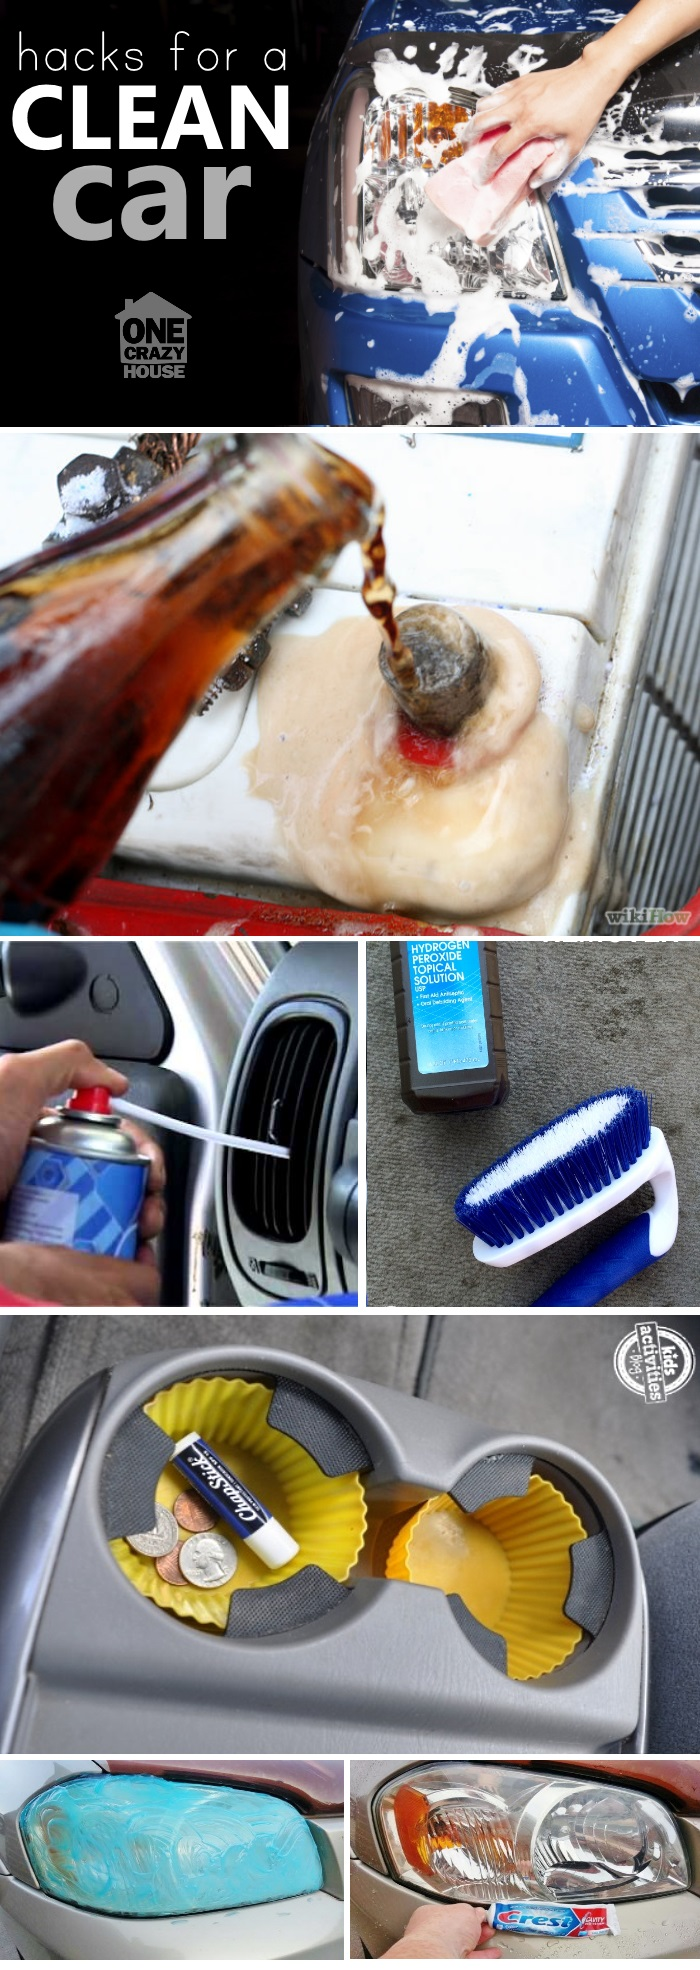 These are genius car cleaning tip and hacks to help make your car sparkly. You can use soda to clean your battery, silicone cupcake liners…